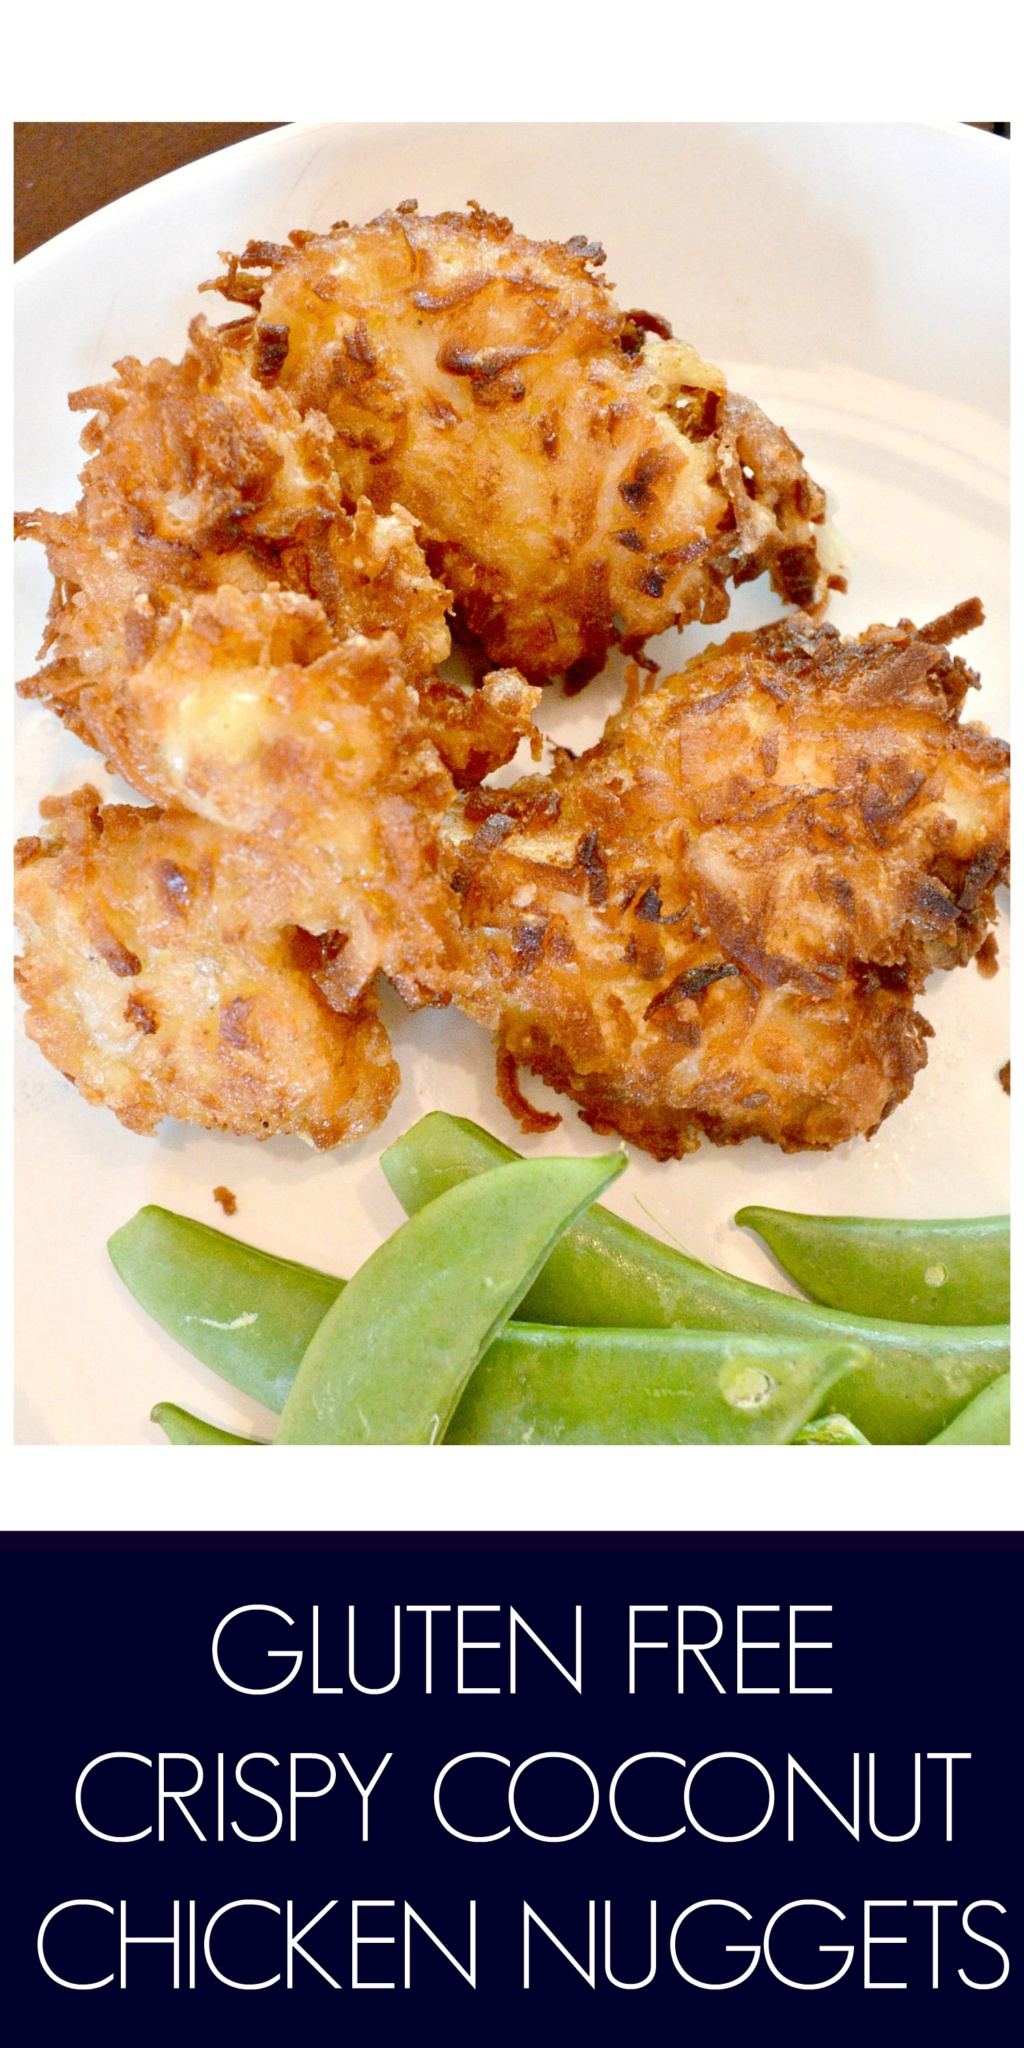 I Tried It – Gluten Free Crispy Coconut Chicken Nuggets